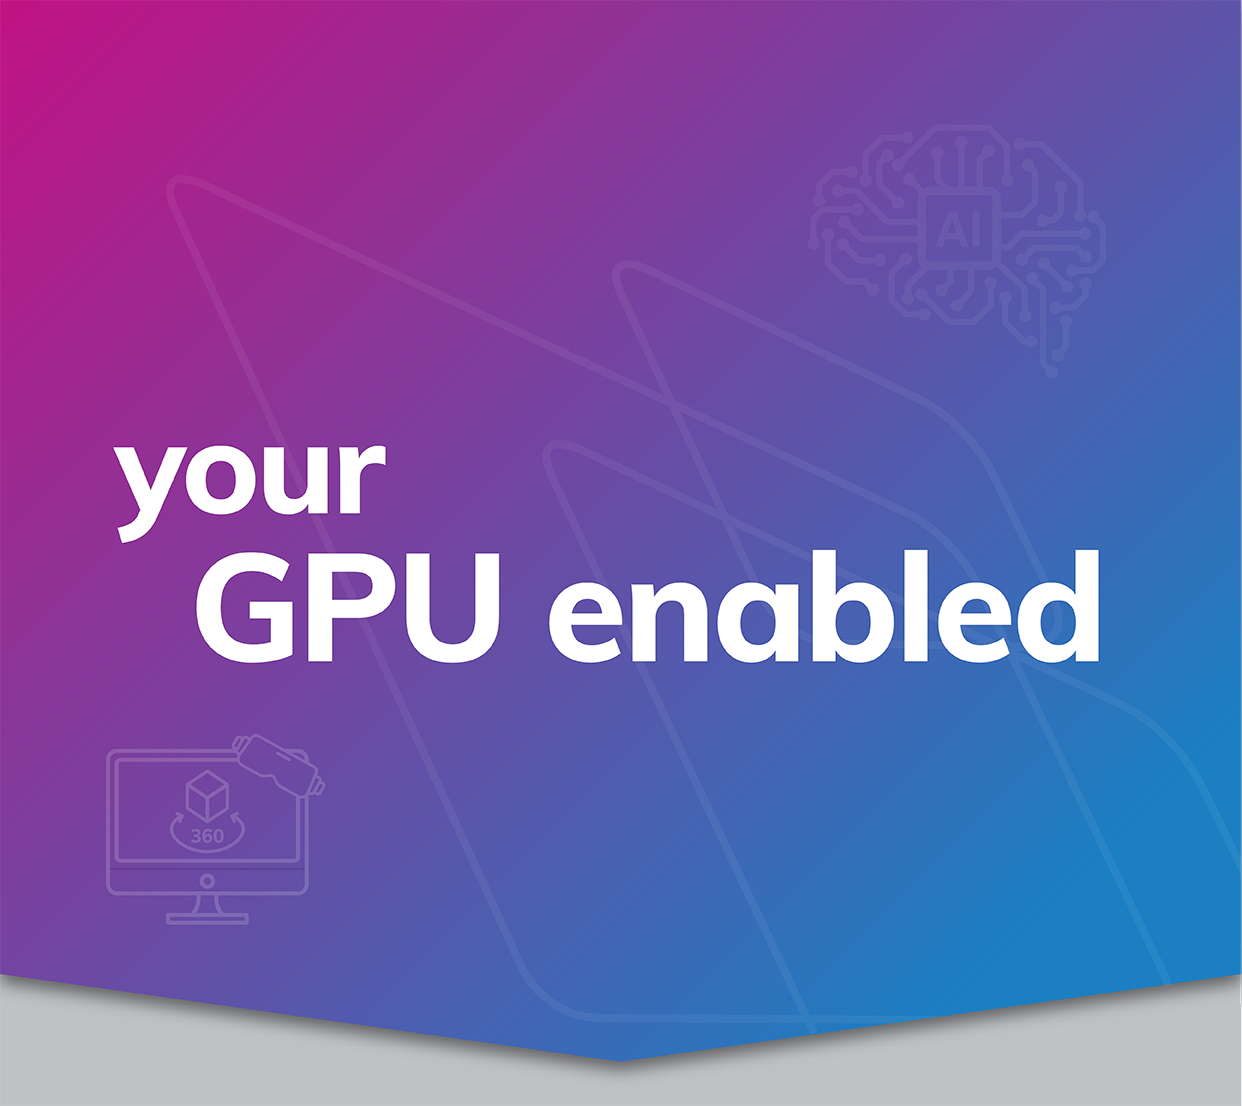 your gpu enabled